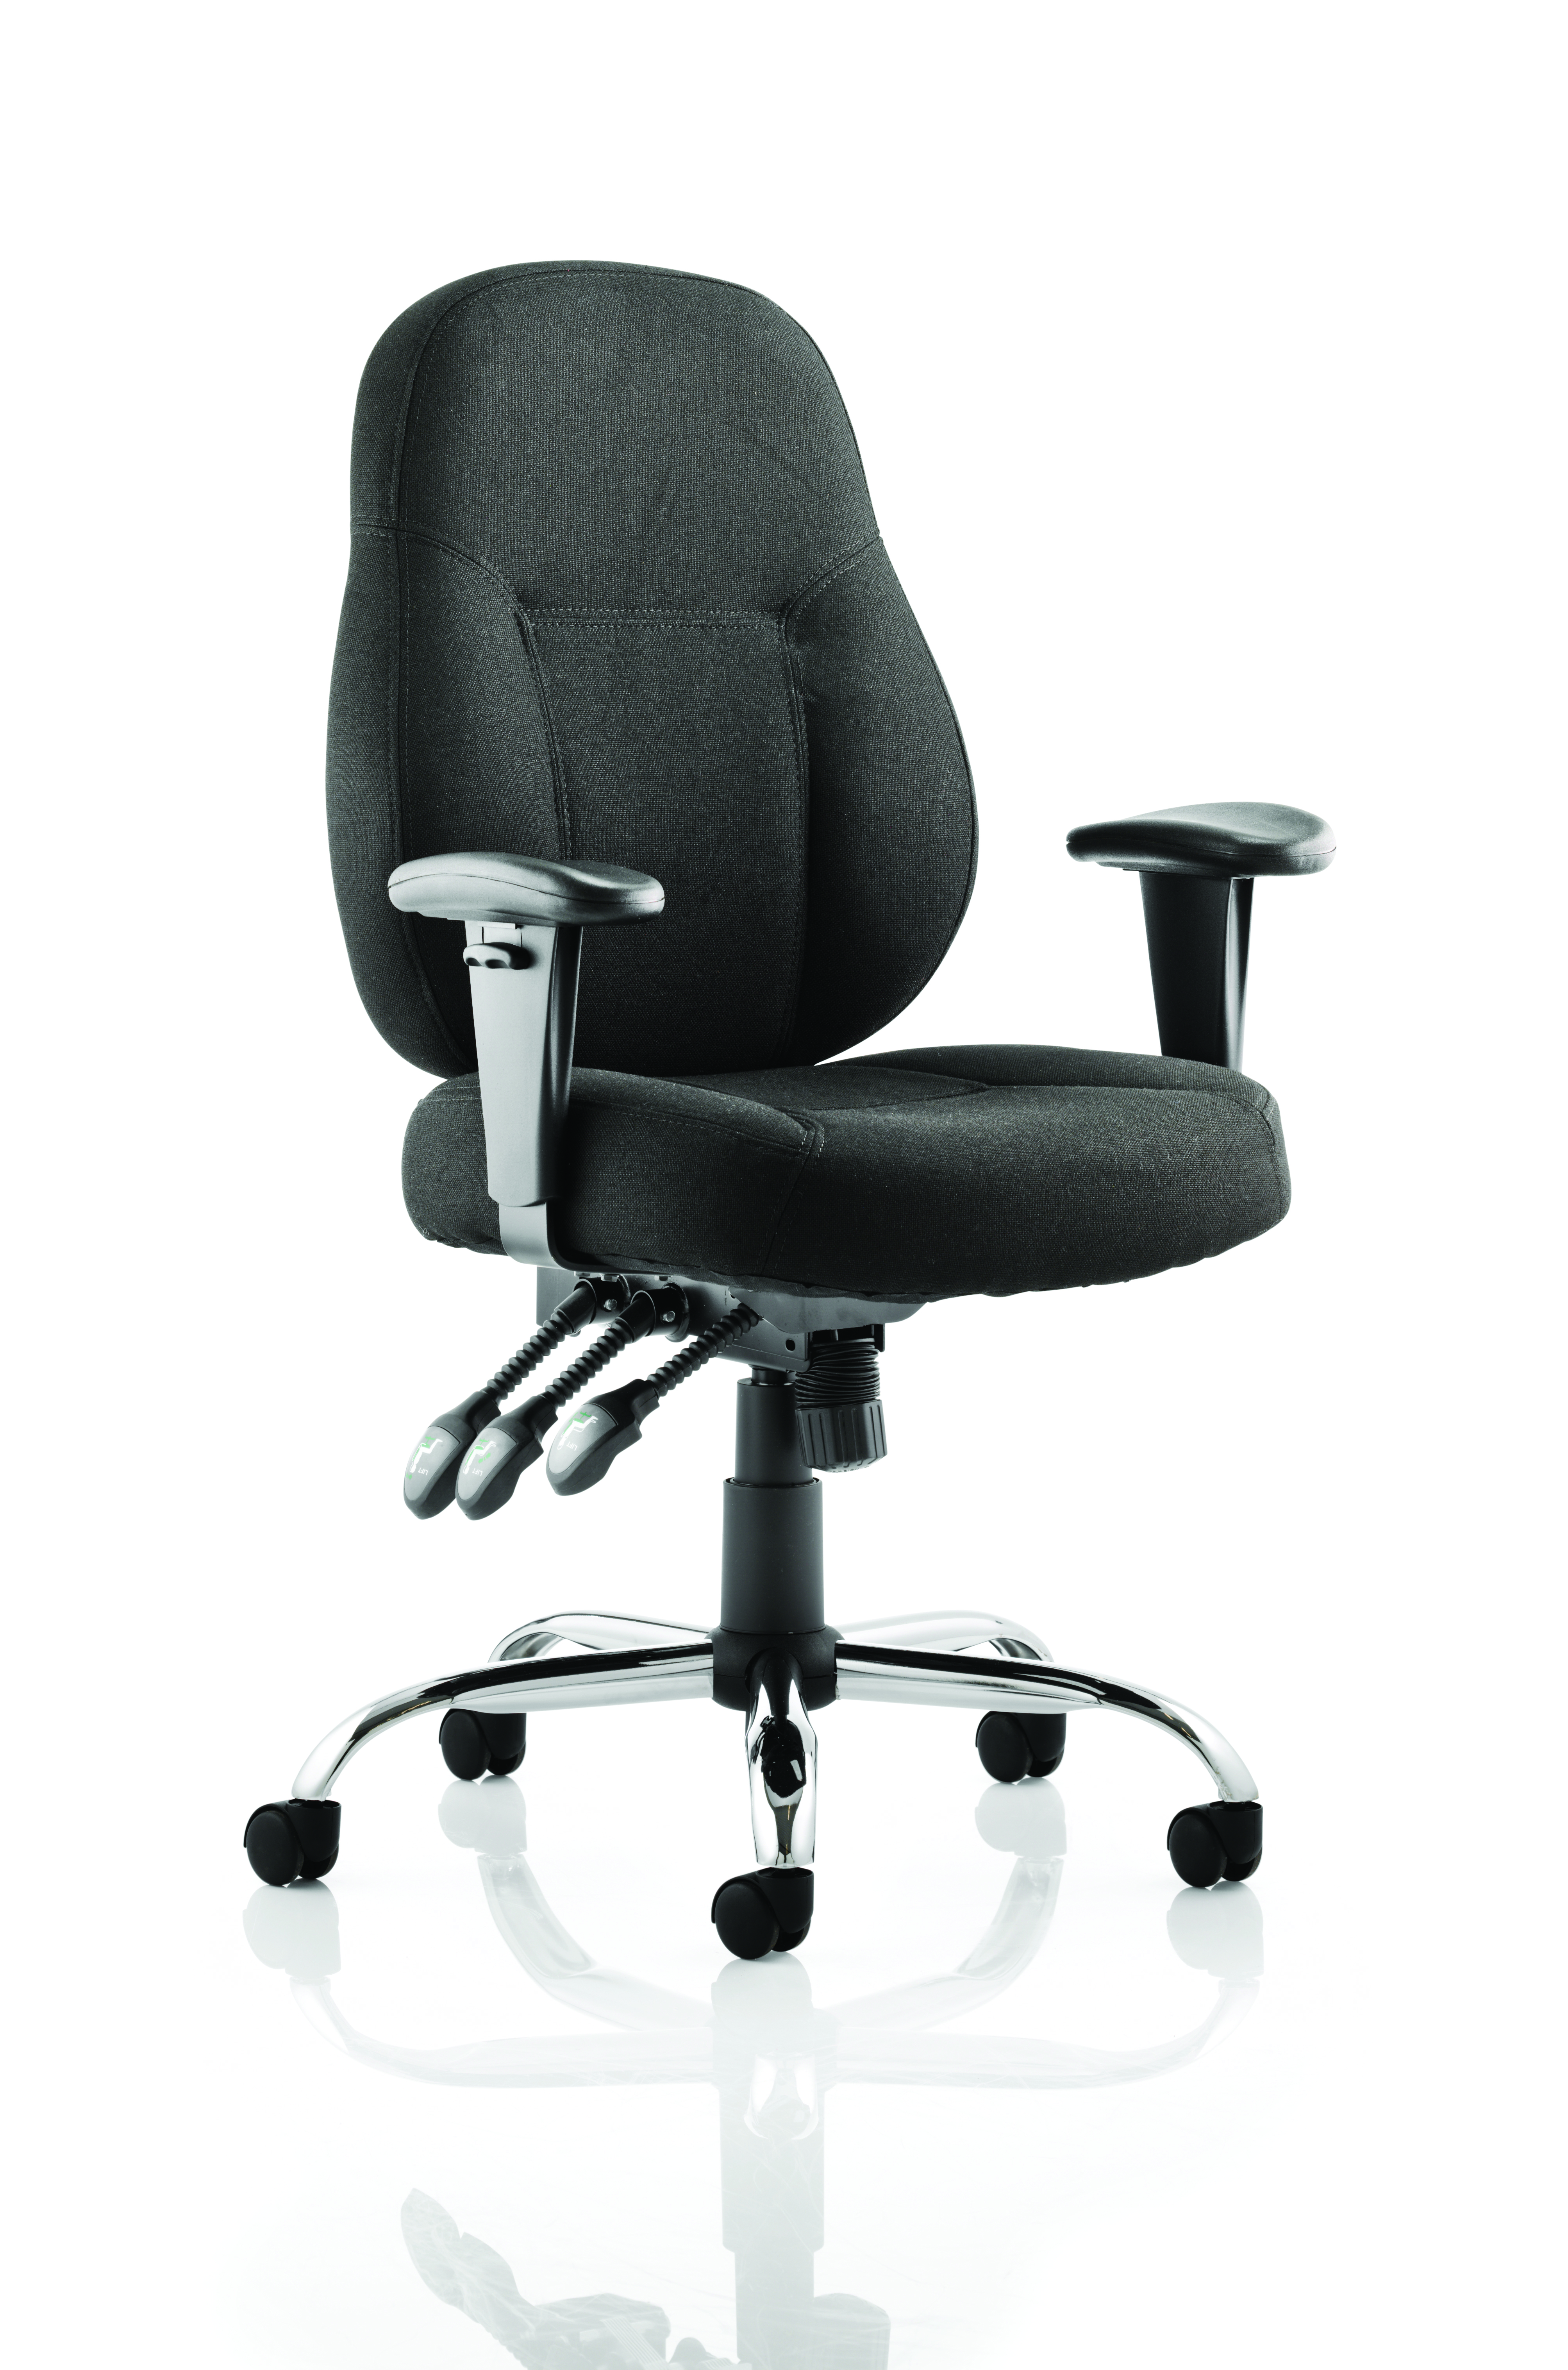 Desk Chairs Storm Chair Black Fabric With Arms OP000127